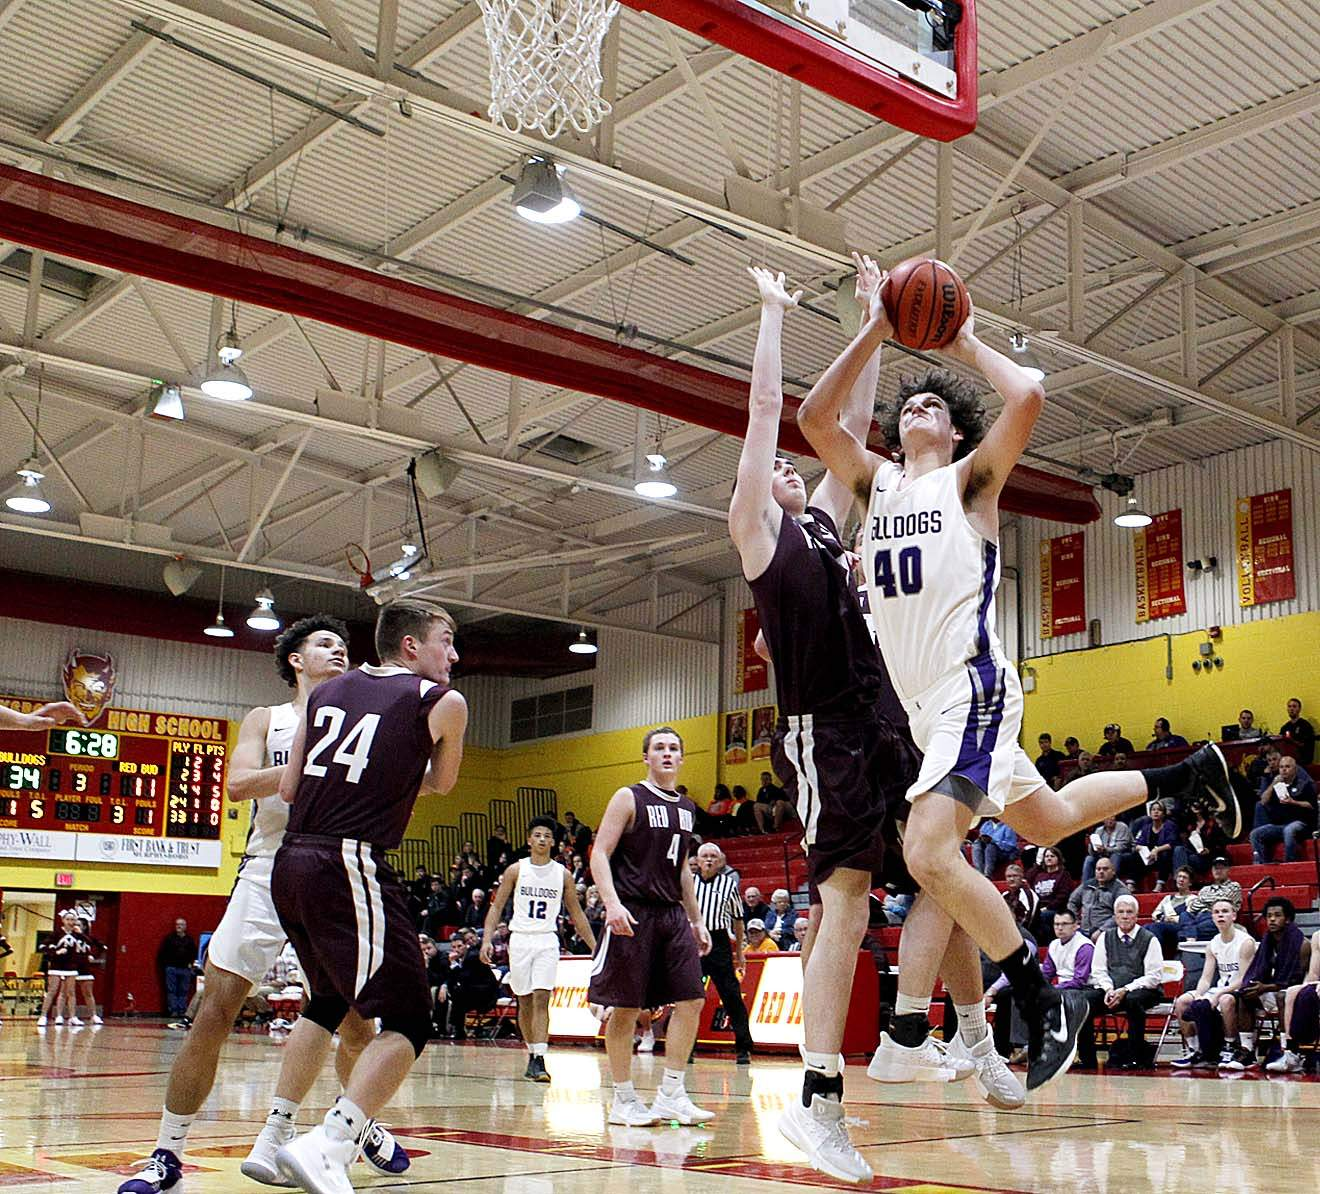 Harrisburg senior forward Dalton Lambert (40) had 15 points and 12 rebounds for the Bulldogs in a 48-26 win over Red Bud at the Ernie Bozarth Memorial Tournament Wednesday night. It's the third straight double-double for Lambert.